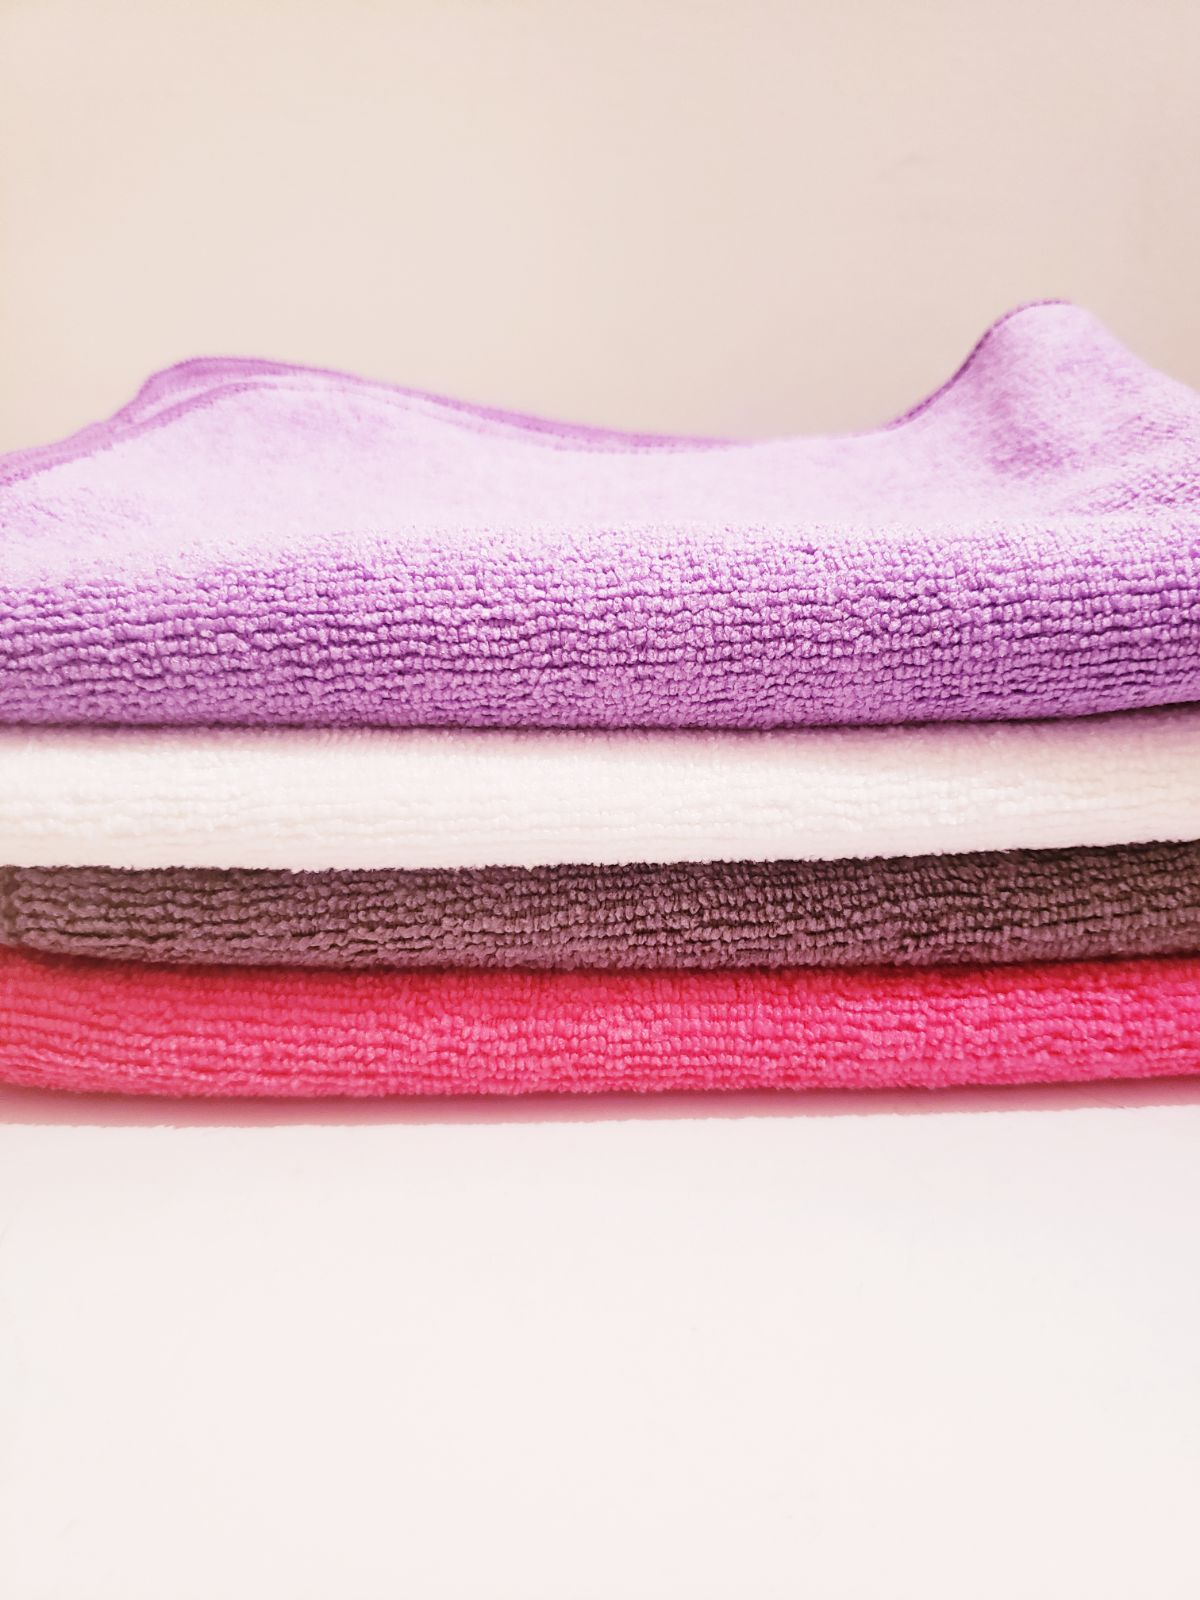 Microfiber Cleaning Cloths Microfiber cleaning cloths